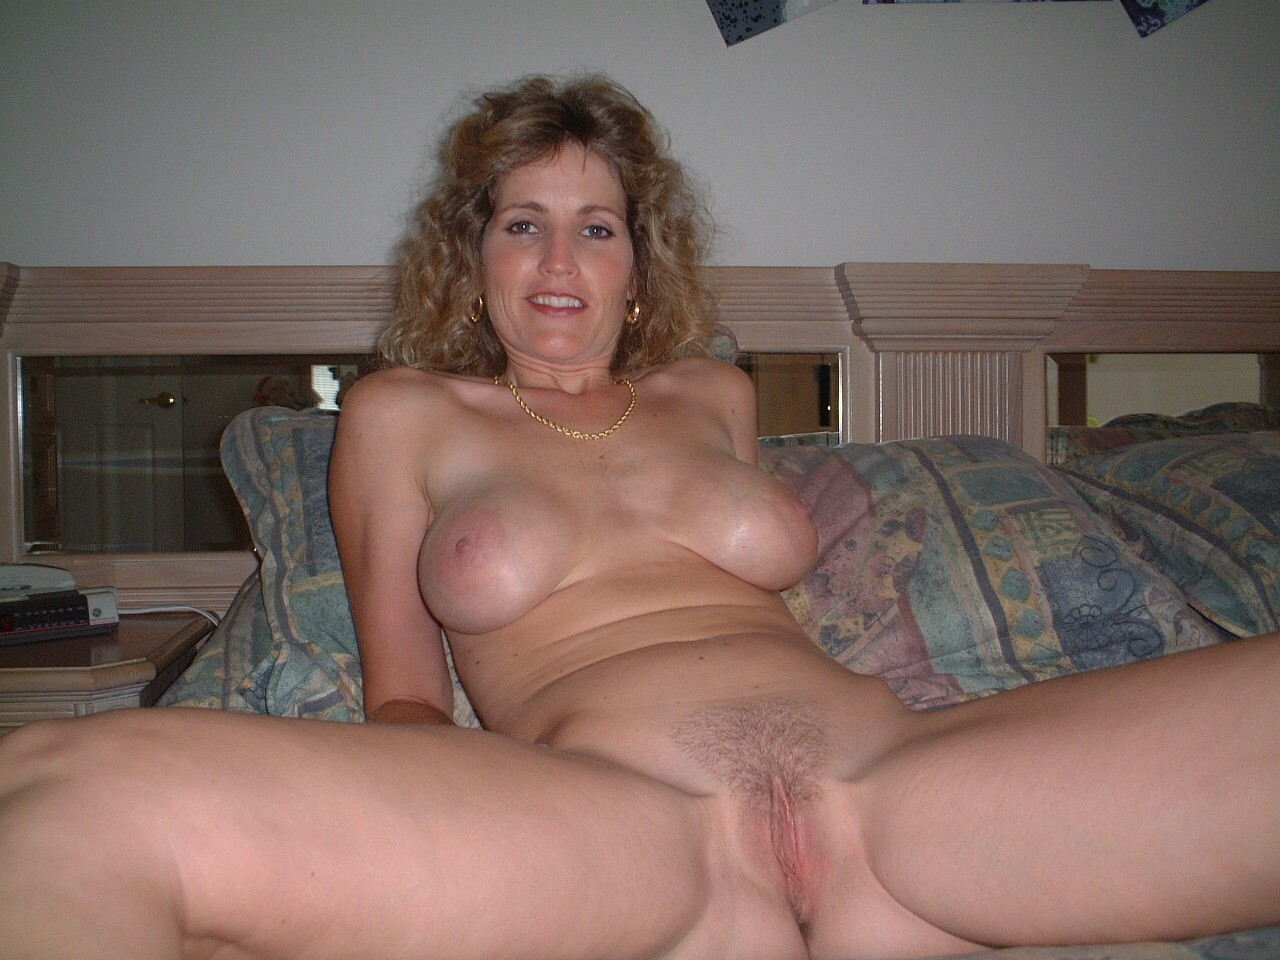 Homemade ex wife naked